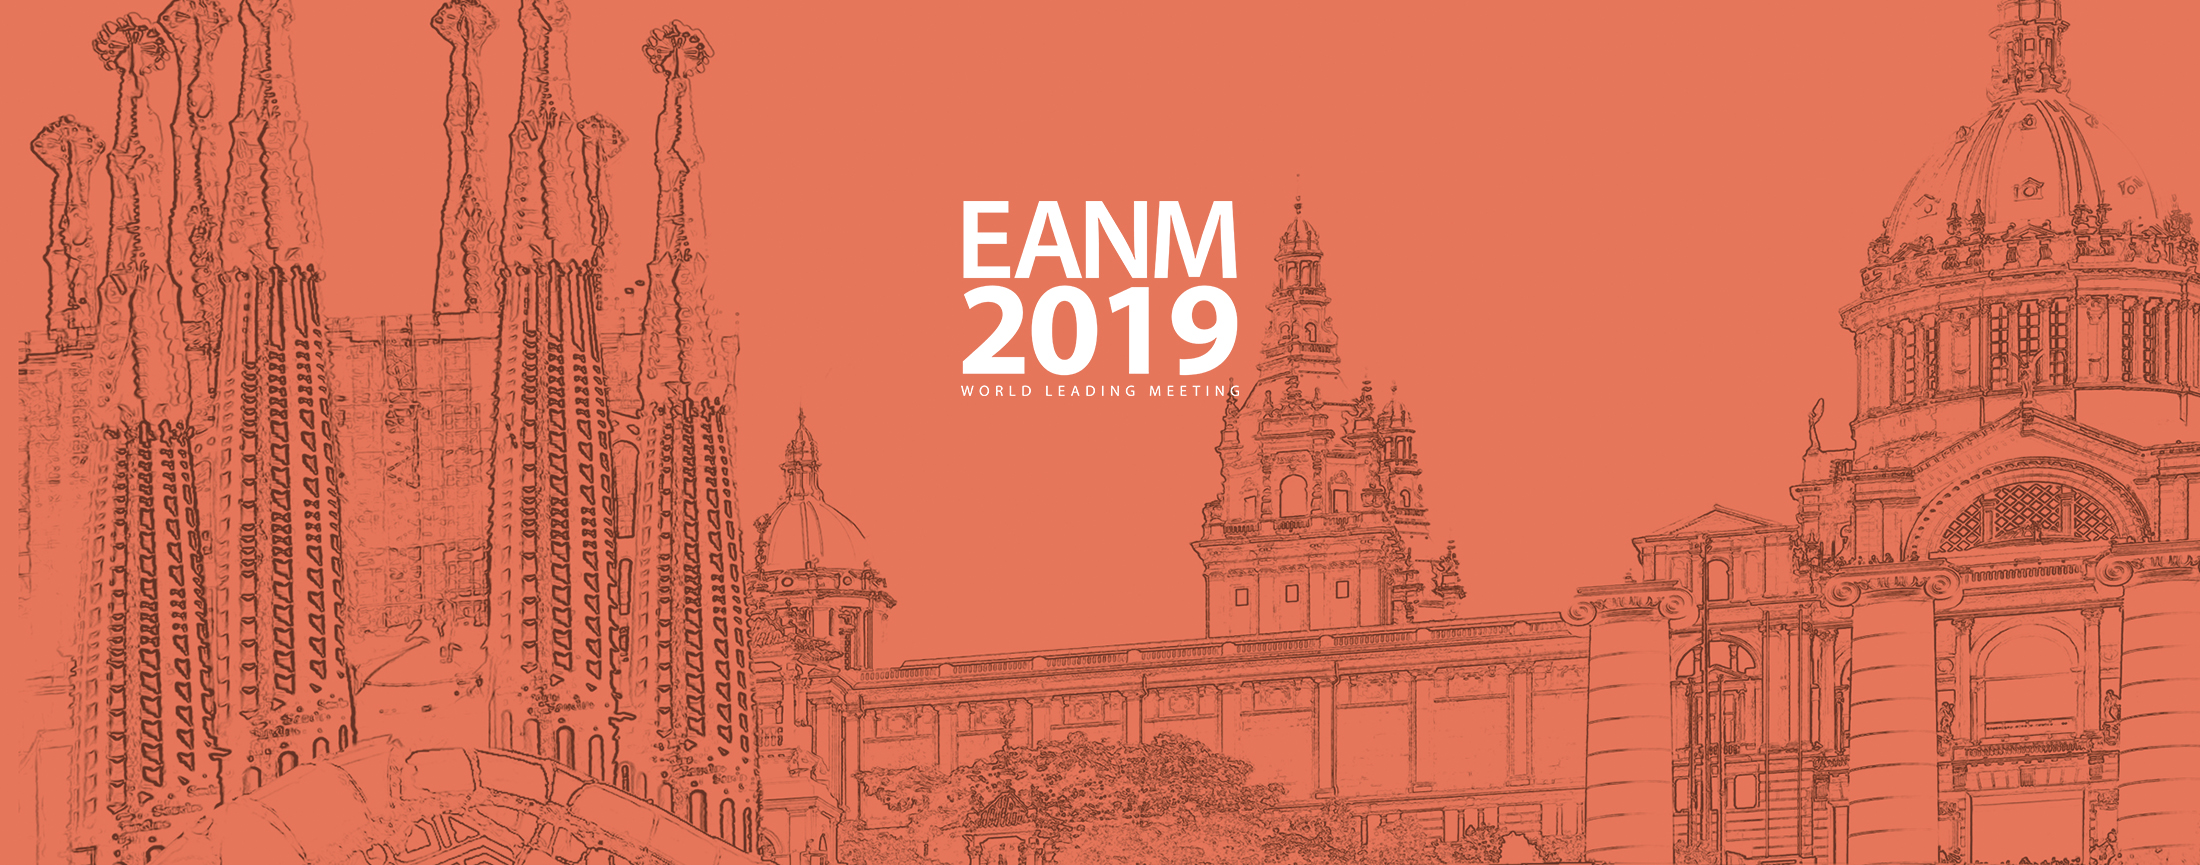 Congreso de la European Association of Nuclear Medicine (EANM).